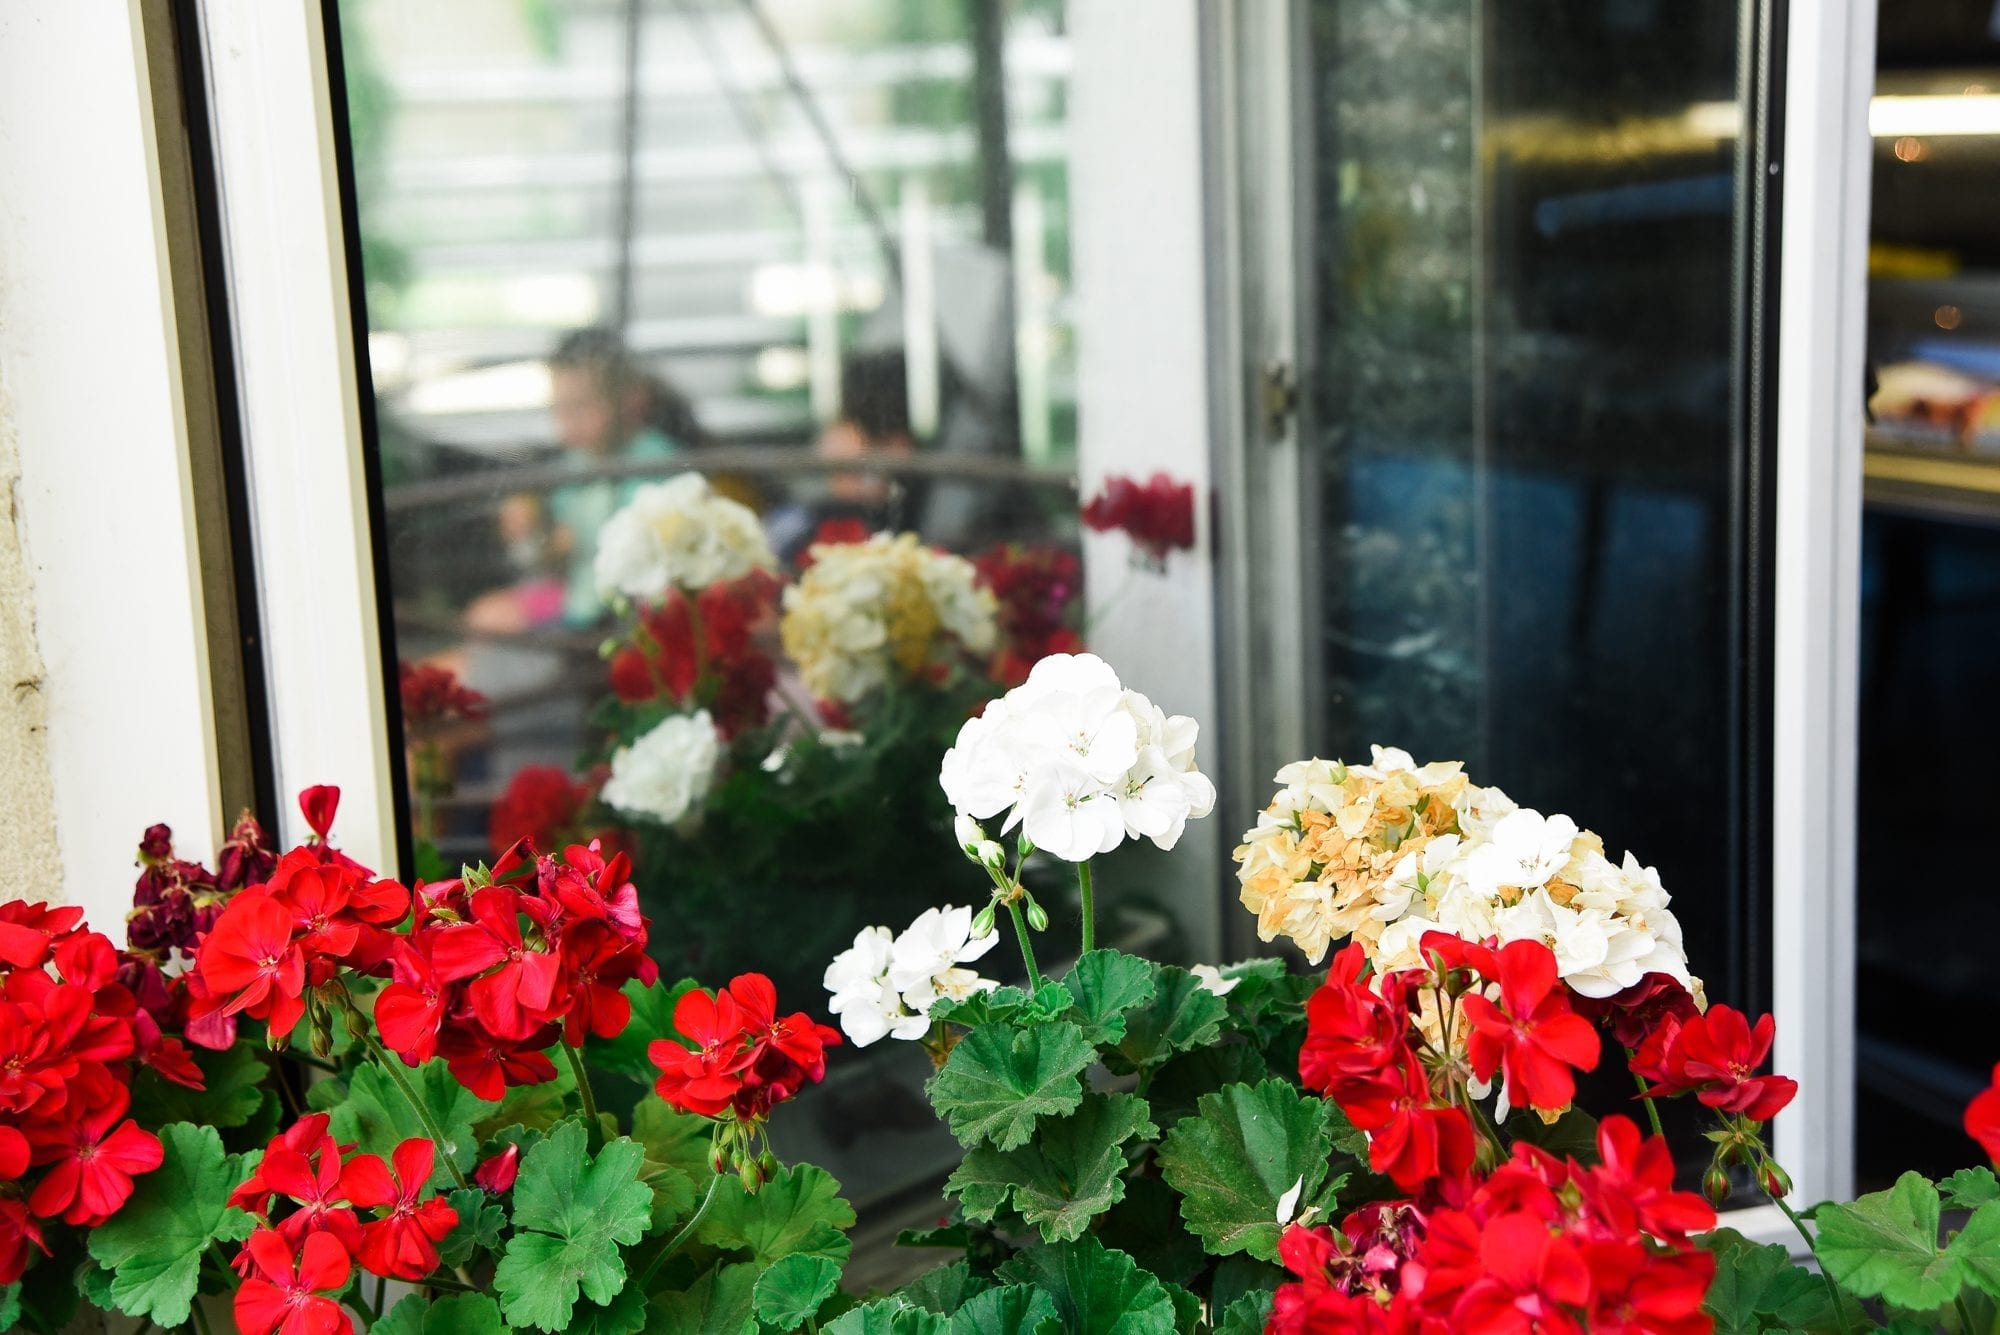 geraniums in window sill in budapest